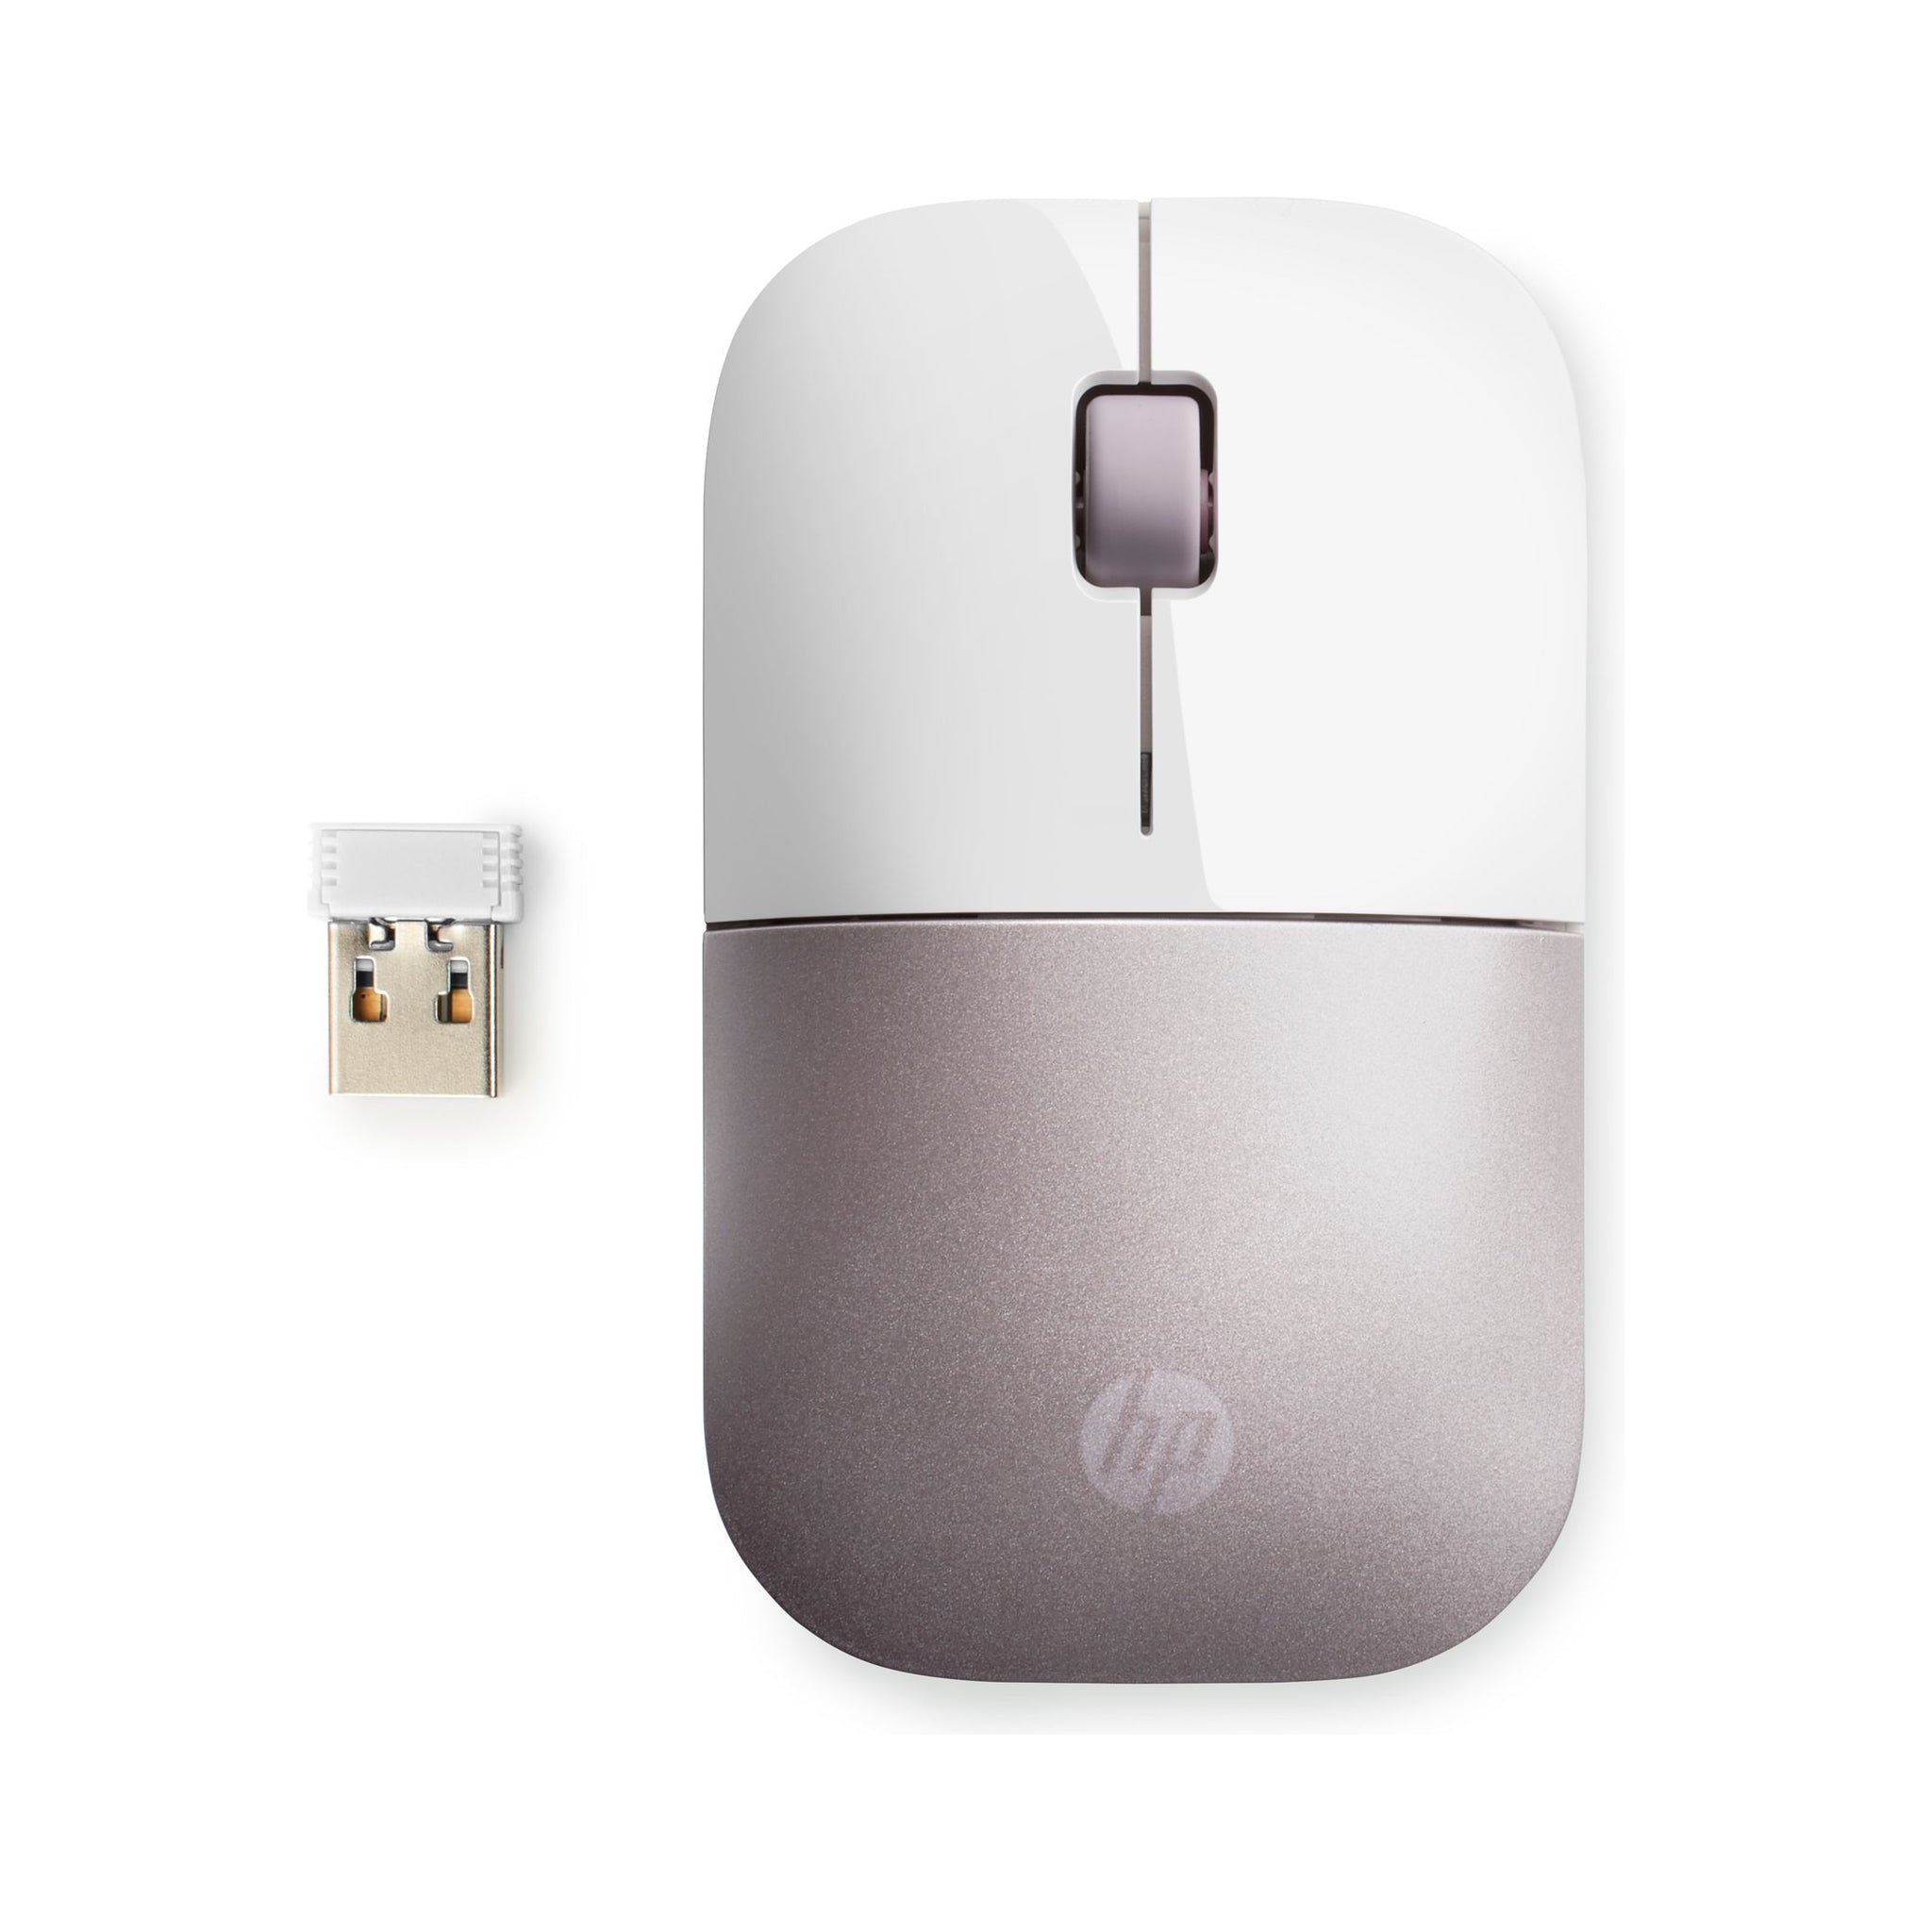 Mouse HP Wireless Z3700 Pink